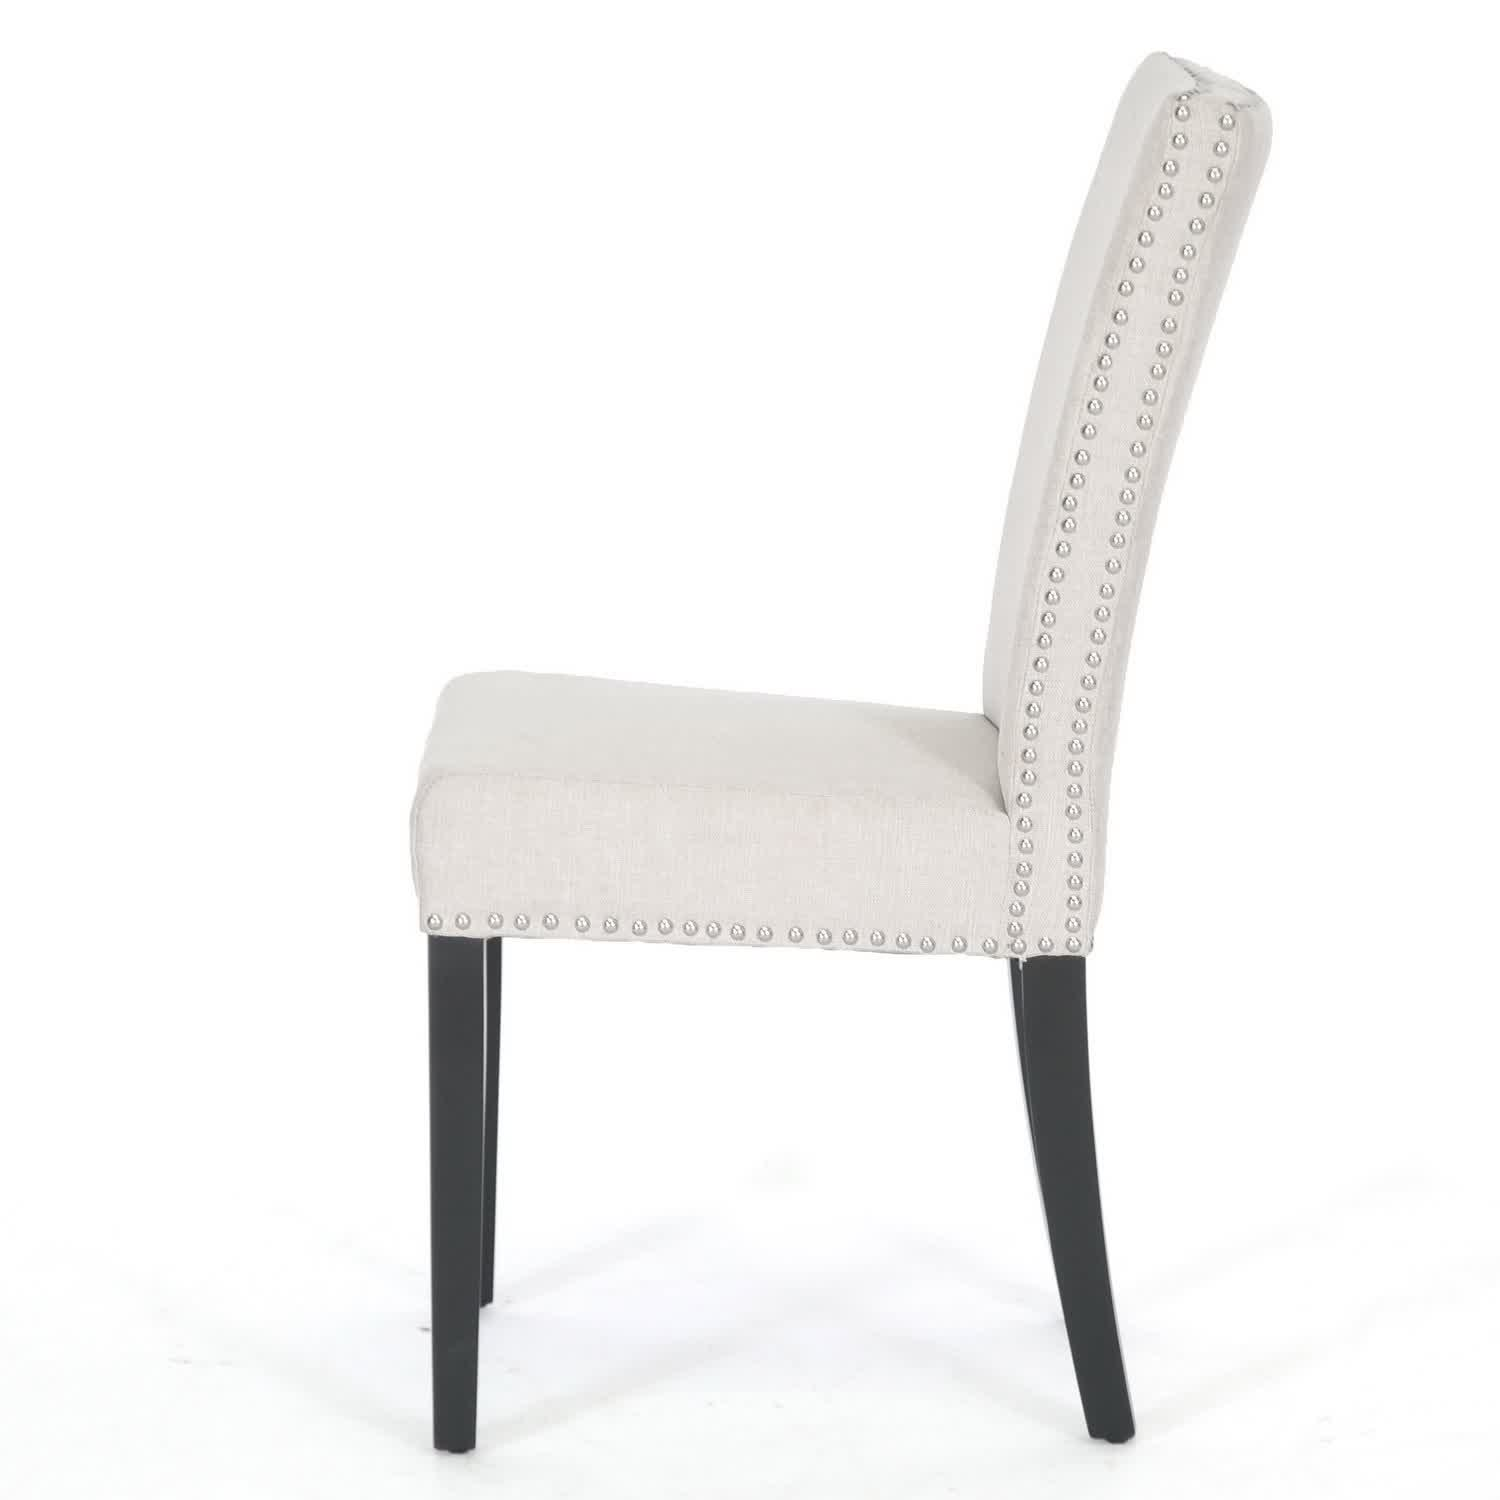 White Dining Chairs: White Upholstered Dining Chair Displaying Infinite